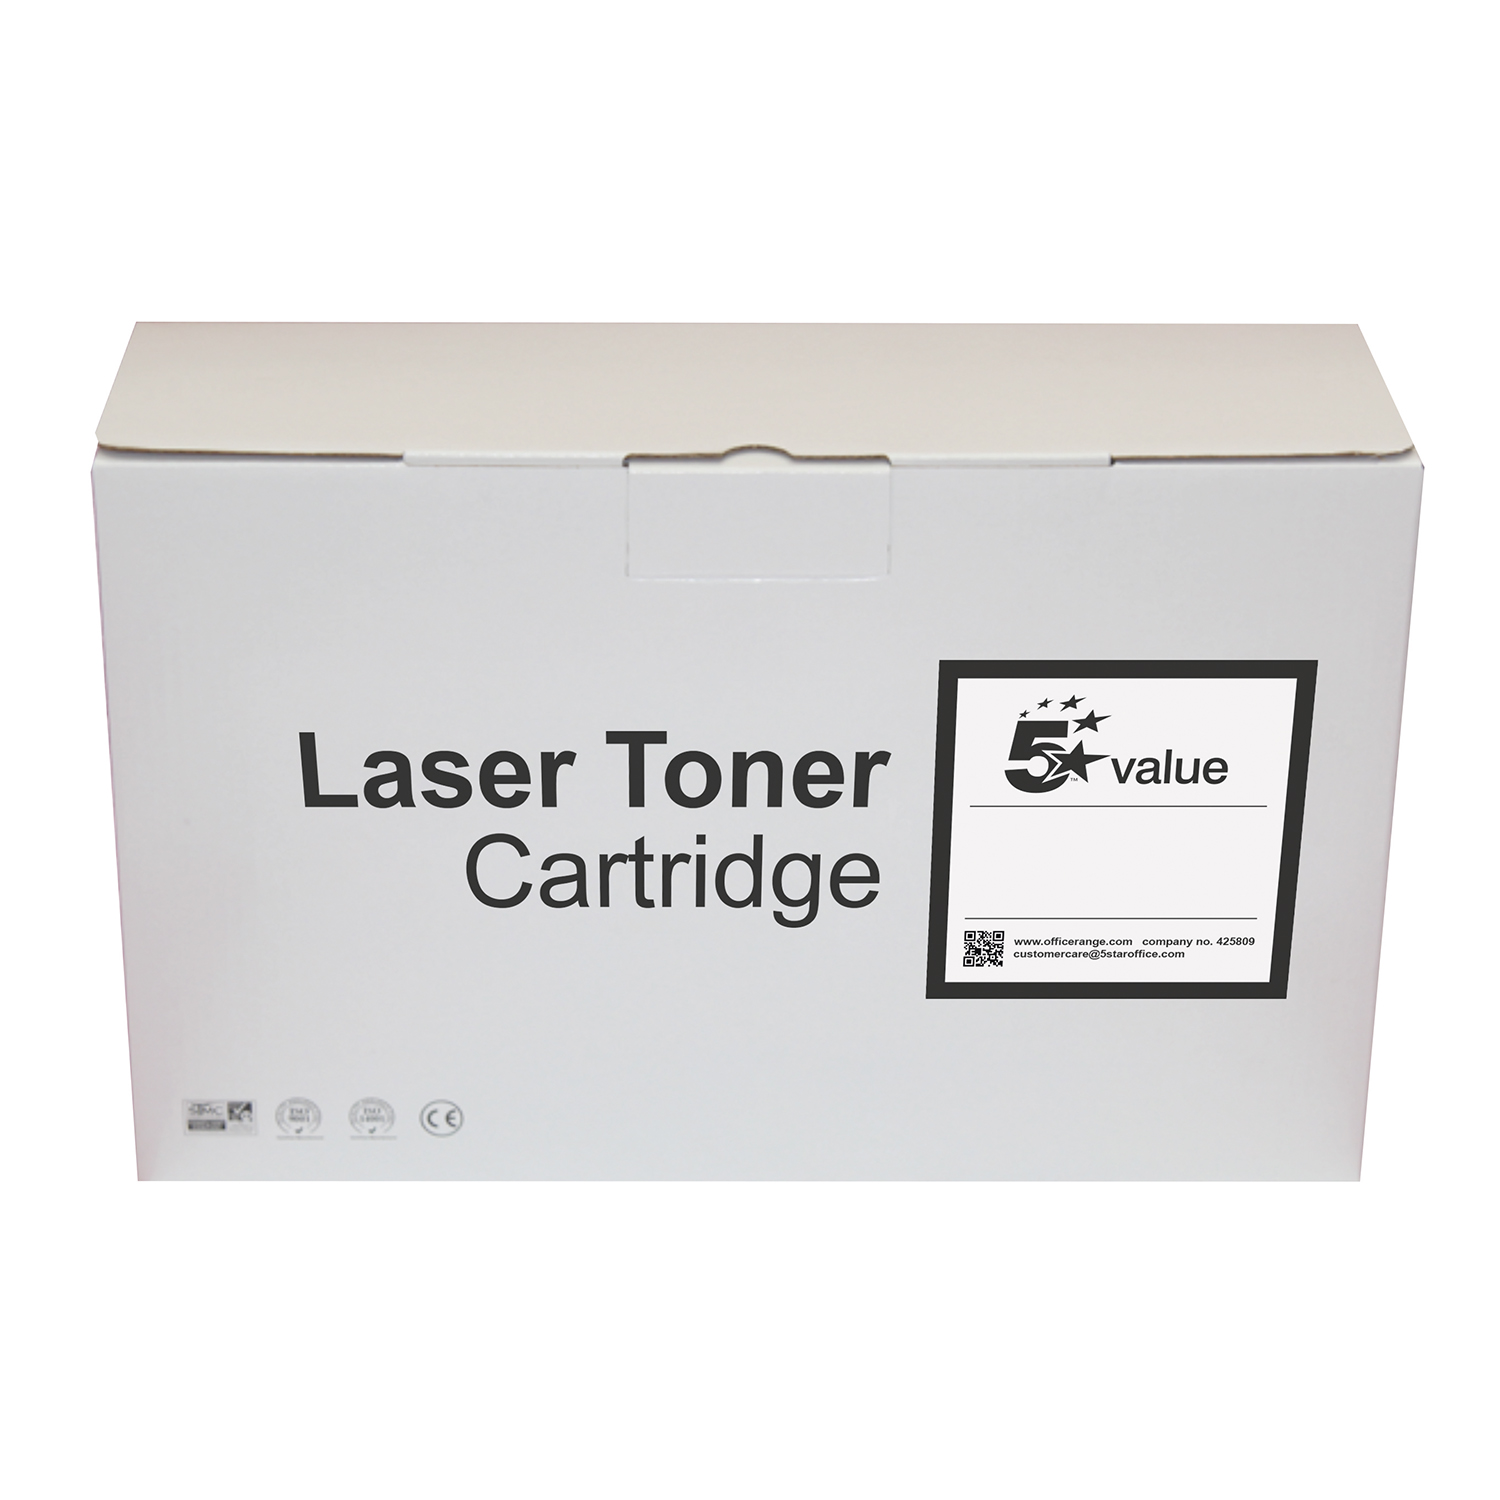 5 Star Value Remanufactured Laser Toner Cartridge 20000pp Black HP No. 42X Q5942X Alternative